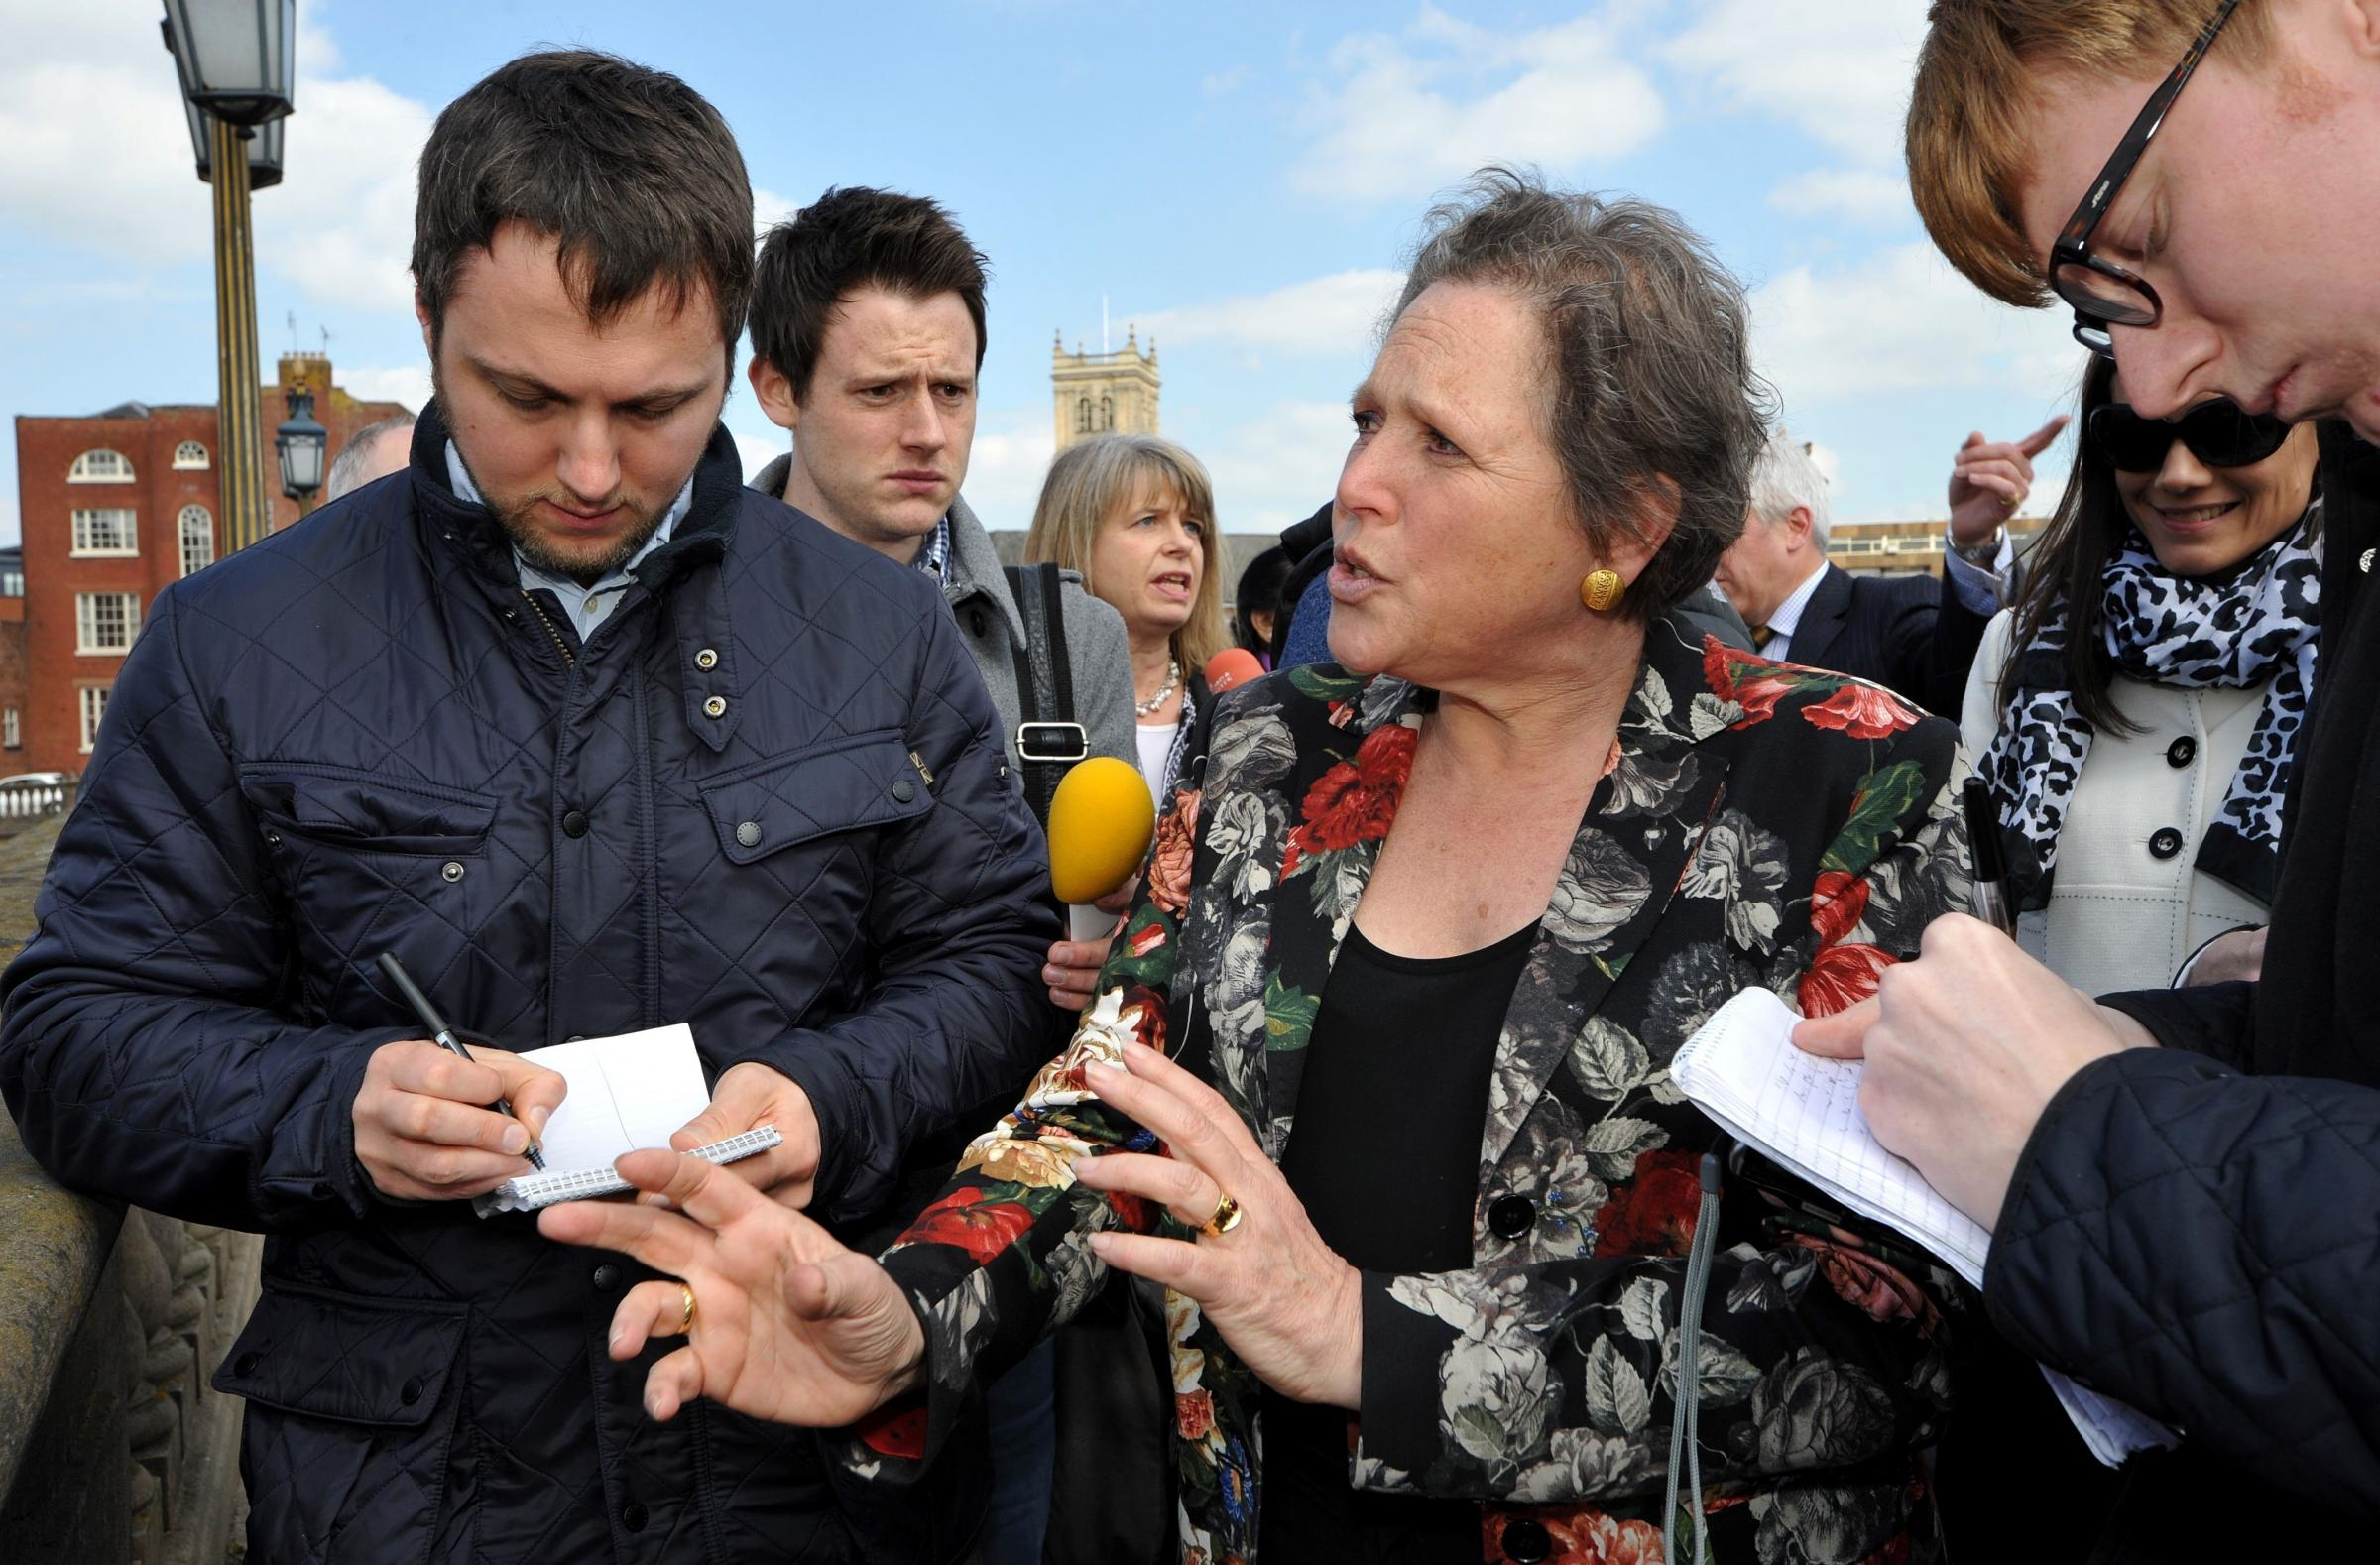 Transport minister Baroness Kramer learns how Worcestershire coped with floods